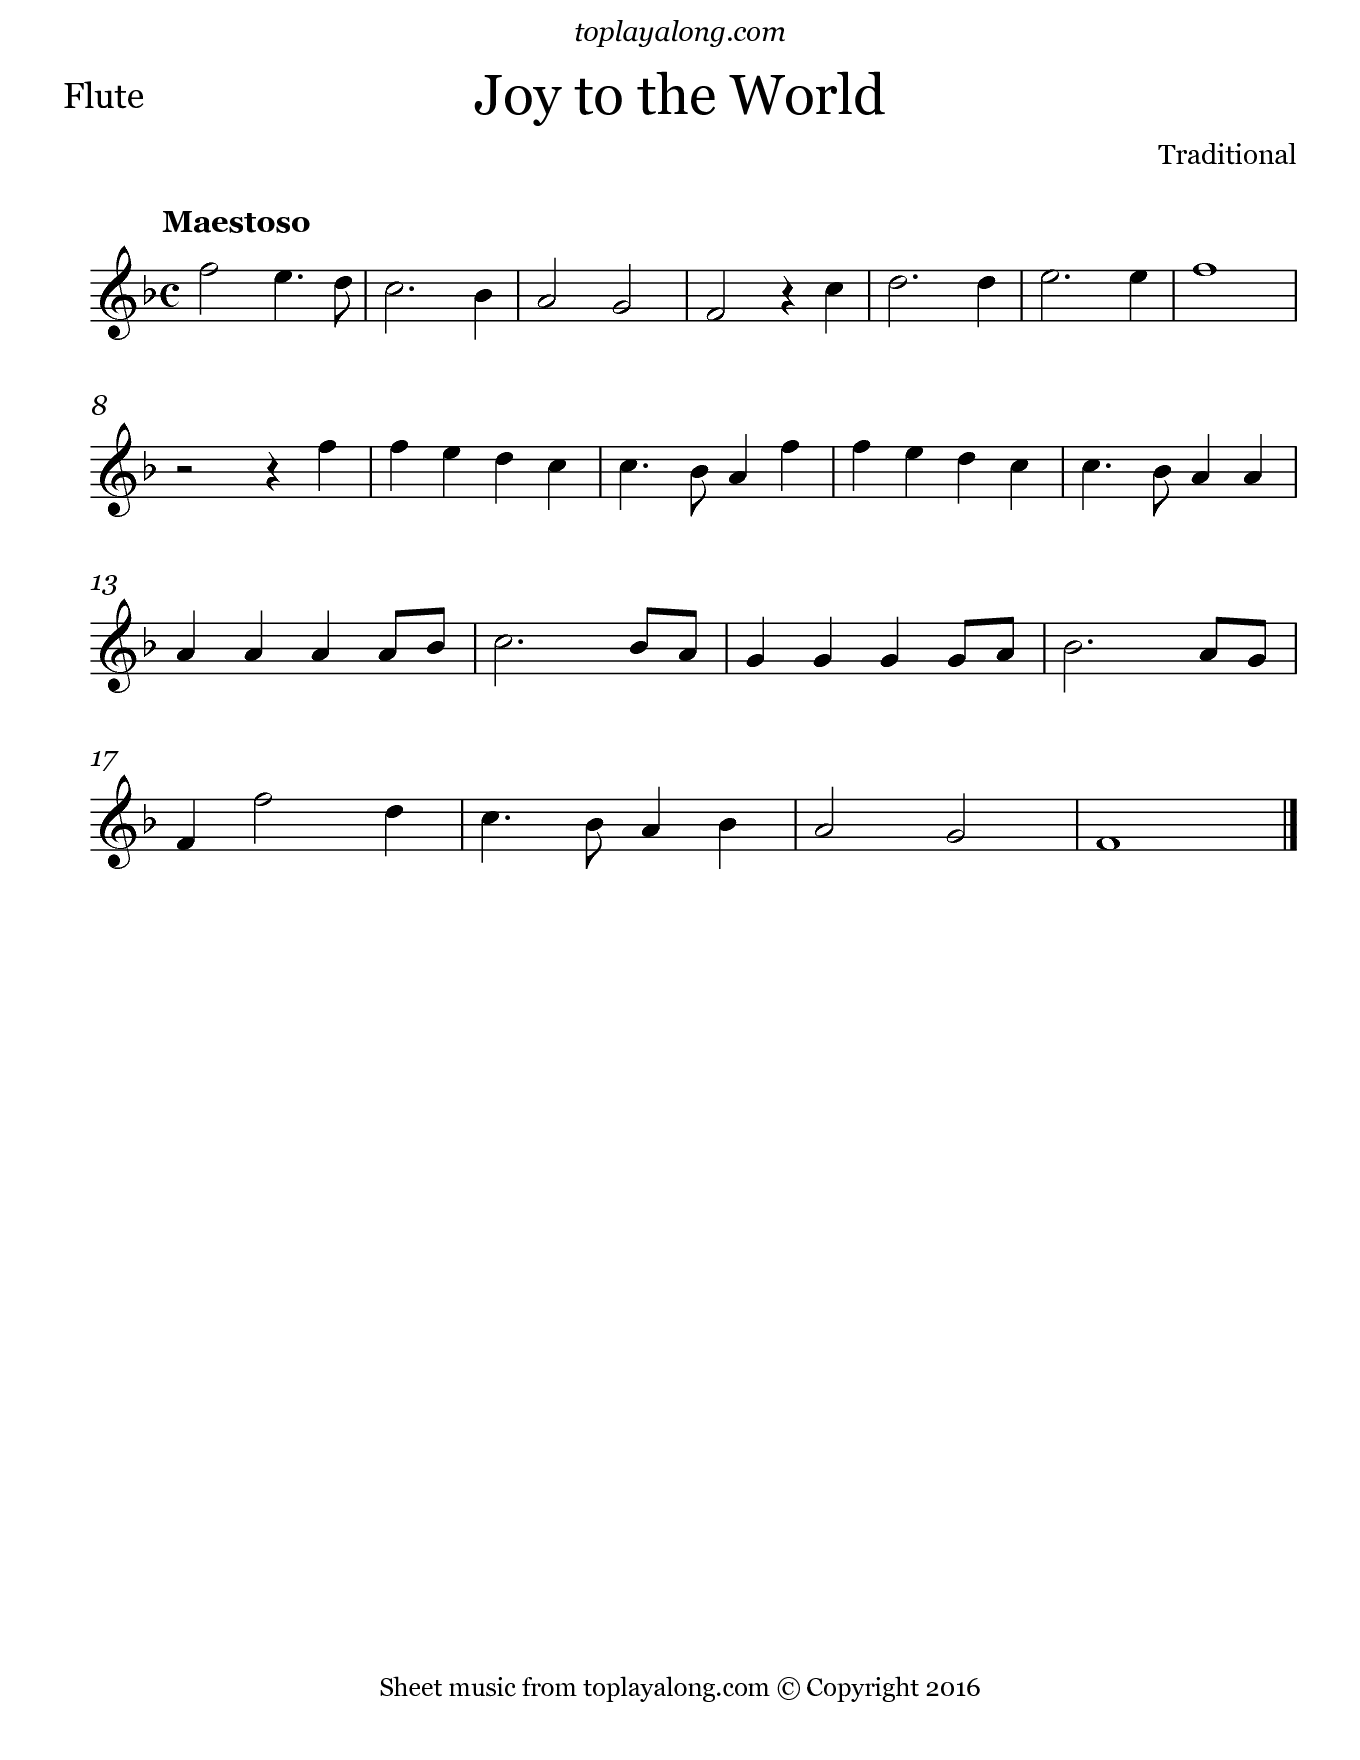 Joy to the World. Sheet music for Flute, page 1.